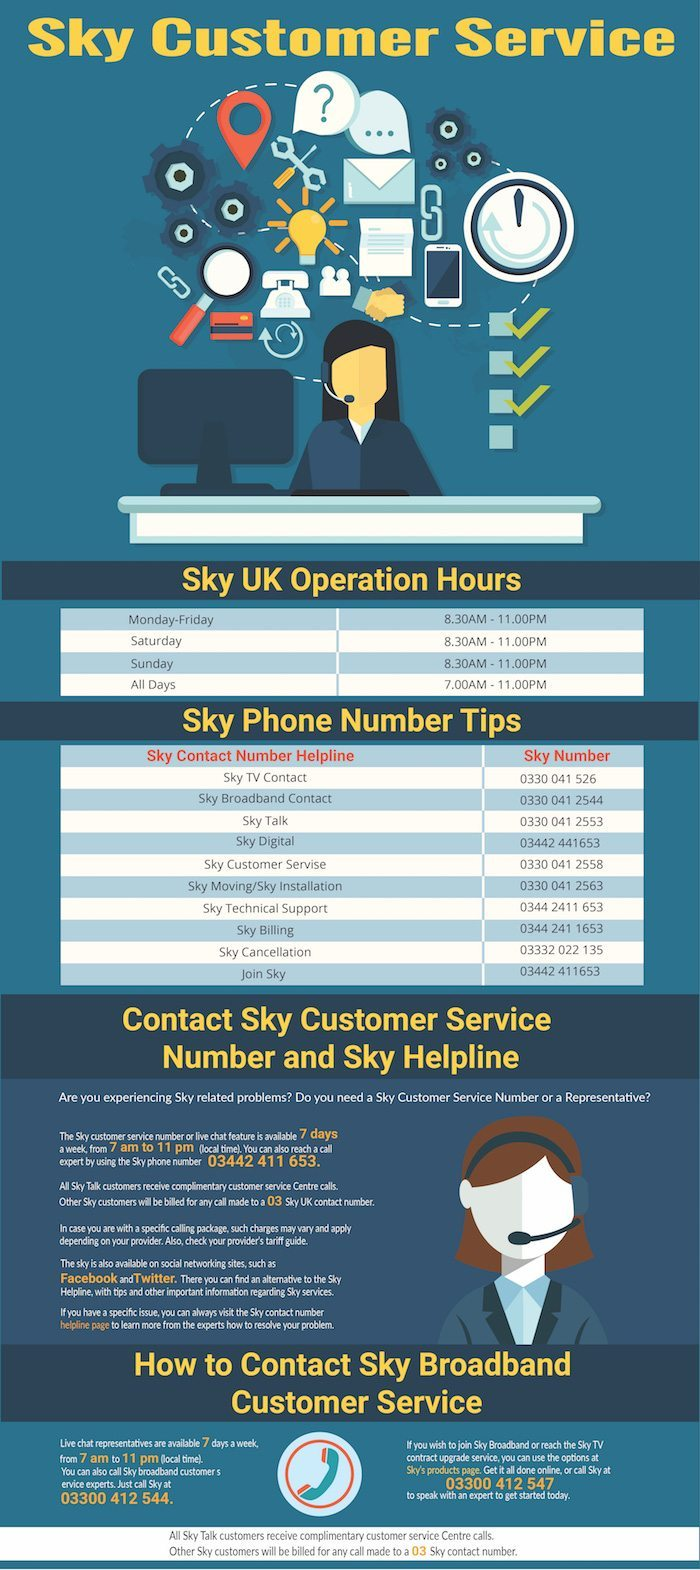 Sky Customer Services Numbers0025299011075 | 24-7helpline Contact